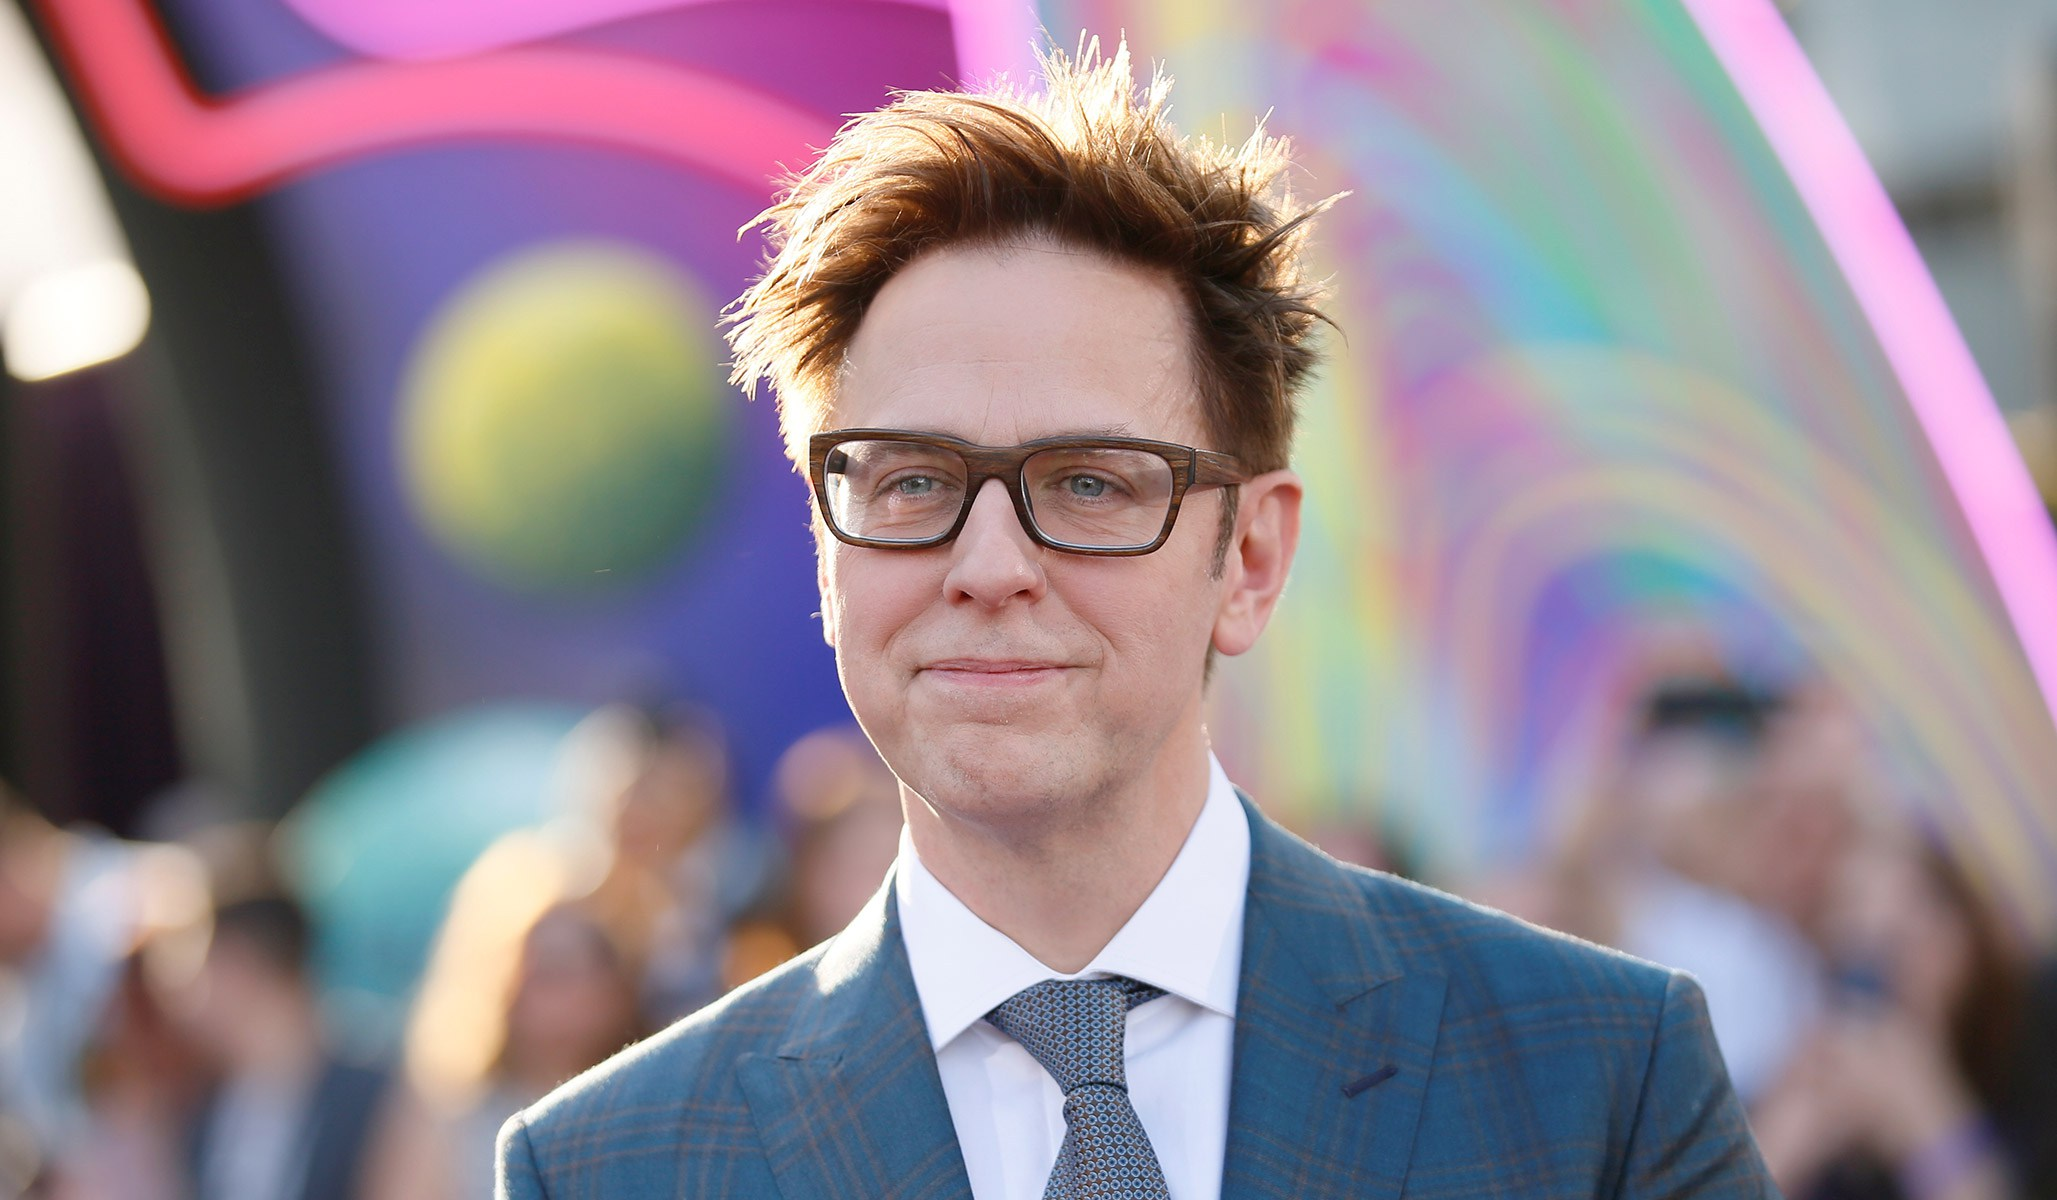 While he does have a controversial past, there's no denying James Gunn's abilities as a film maker. (Image via National Review)